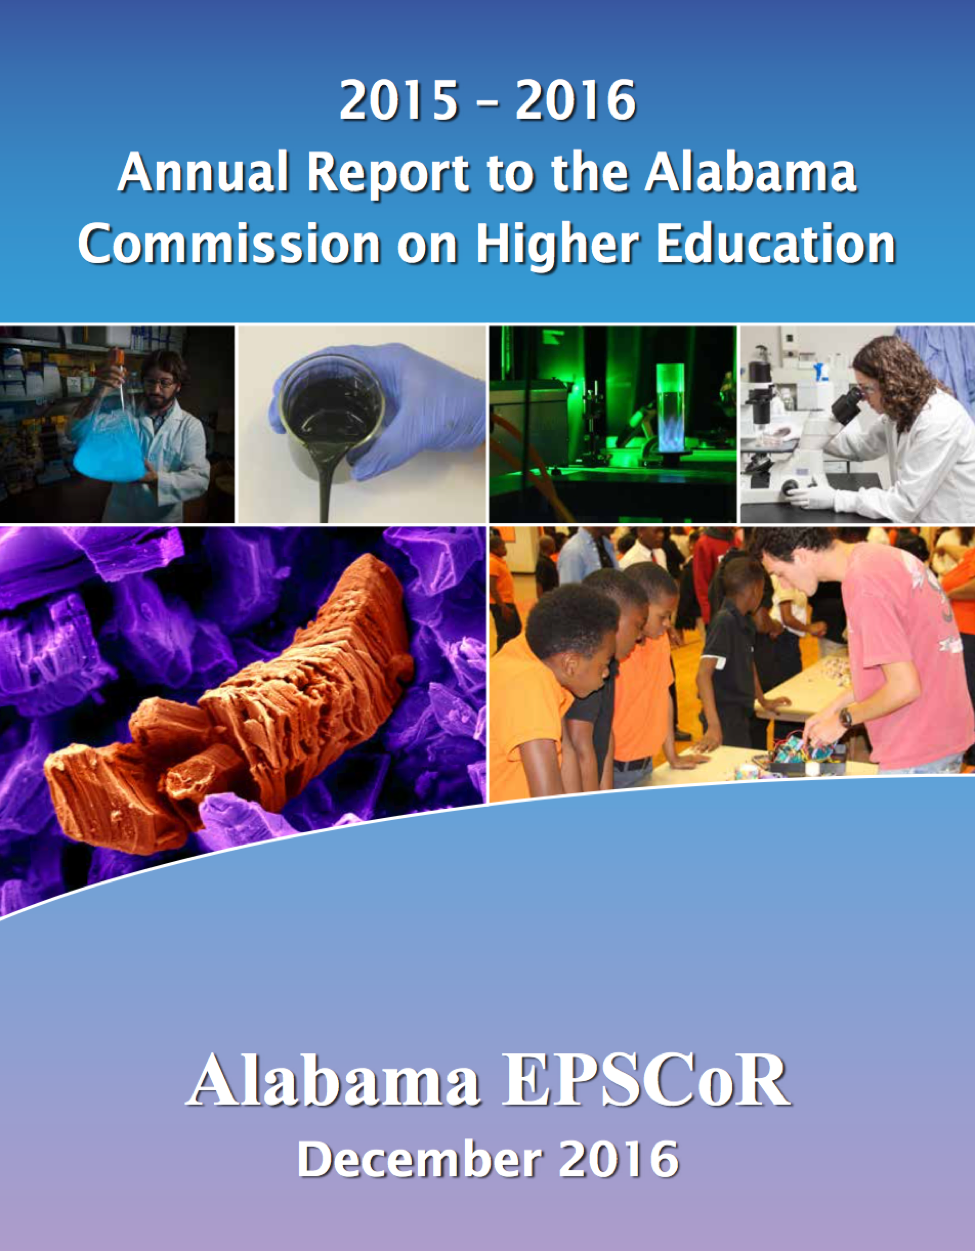 2015-2016 Annual Report to the Alabama Commission on Higher Education